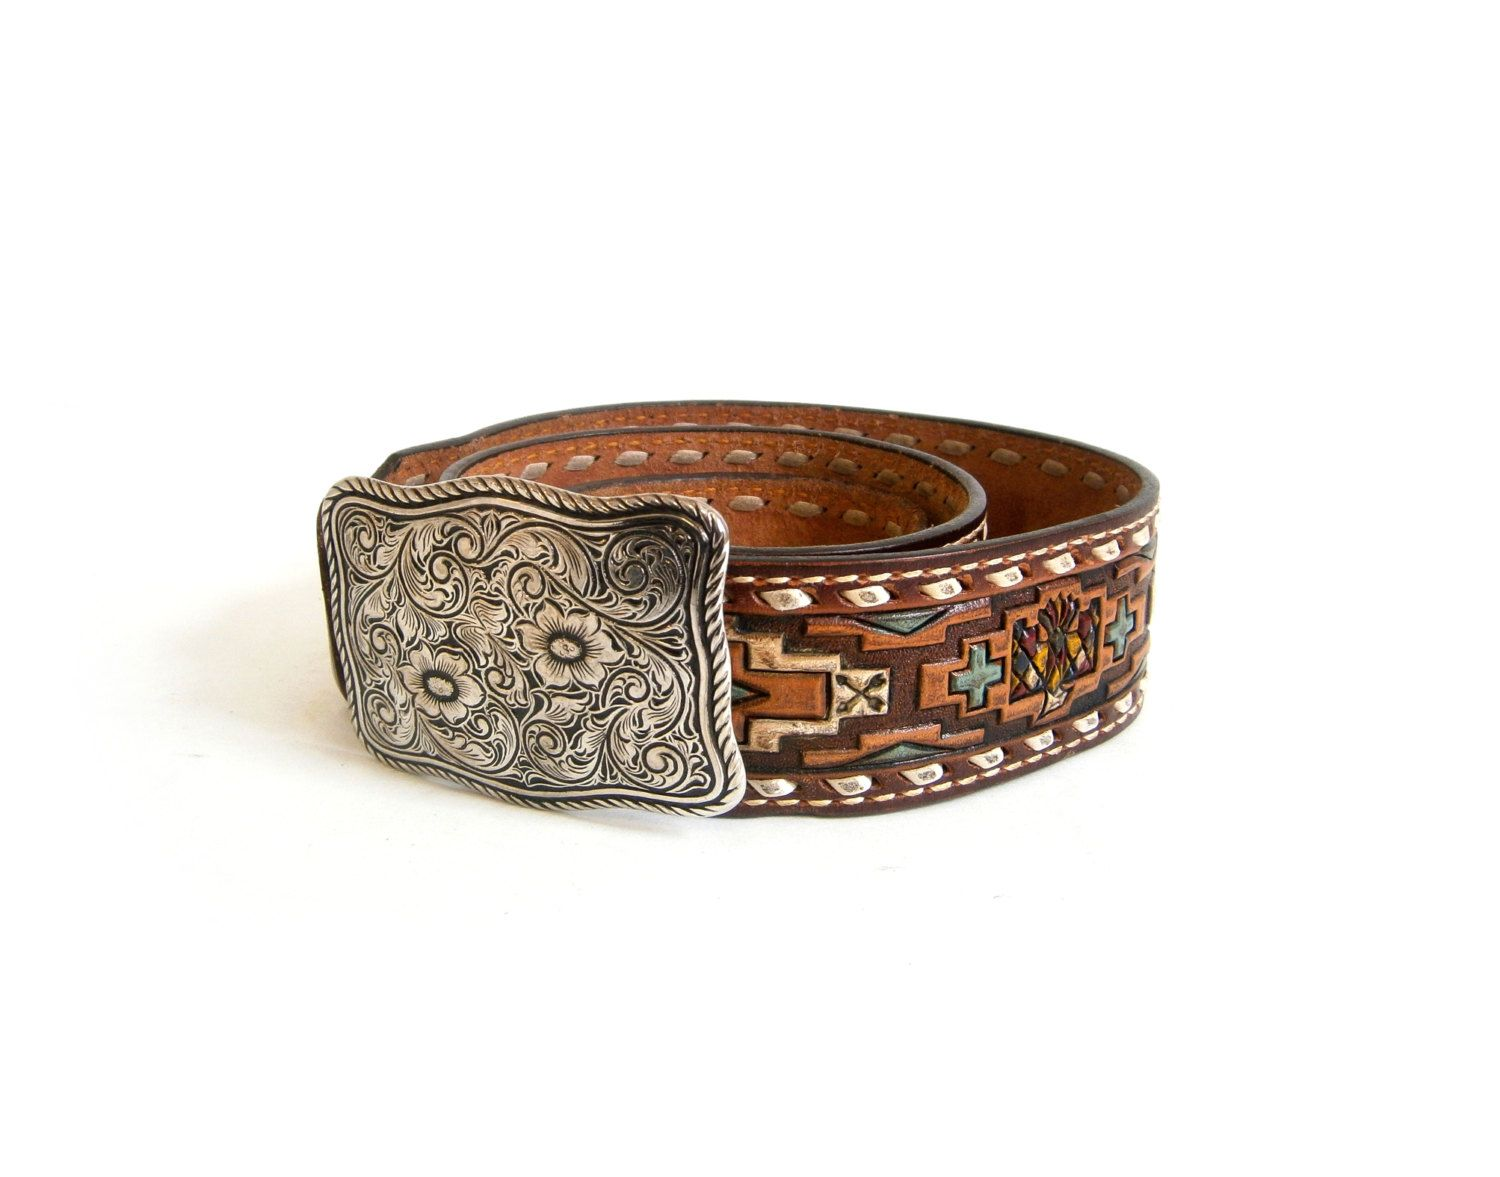 Tony Lama Hand Tooled Leather Belt